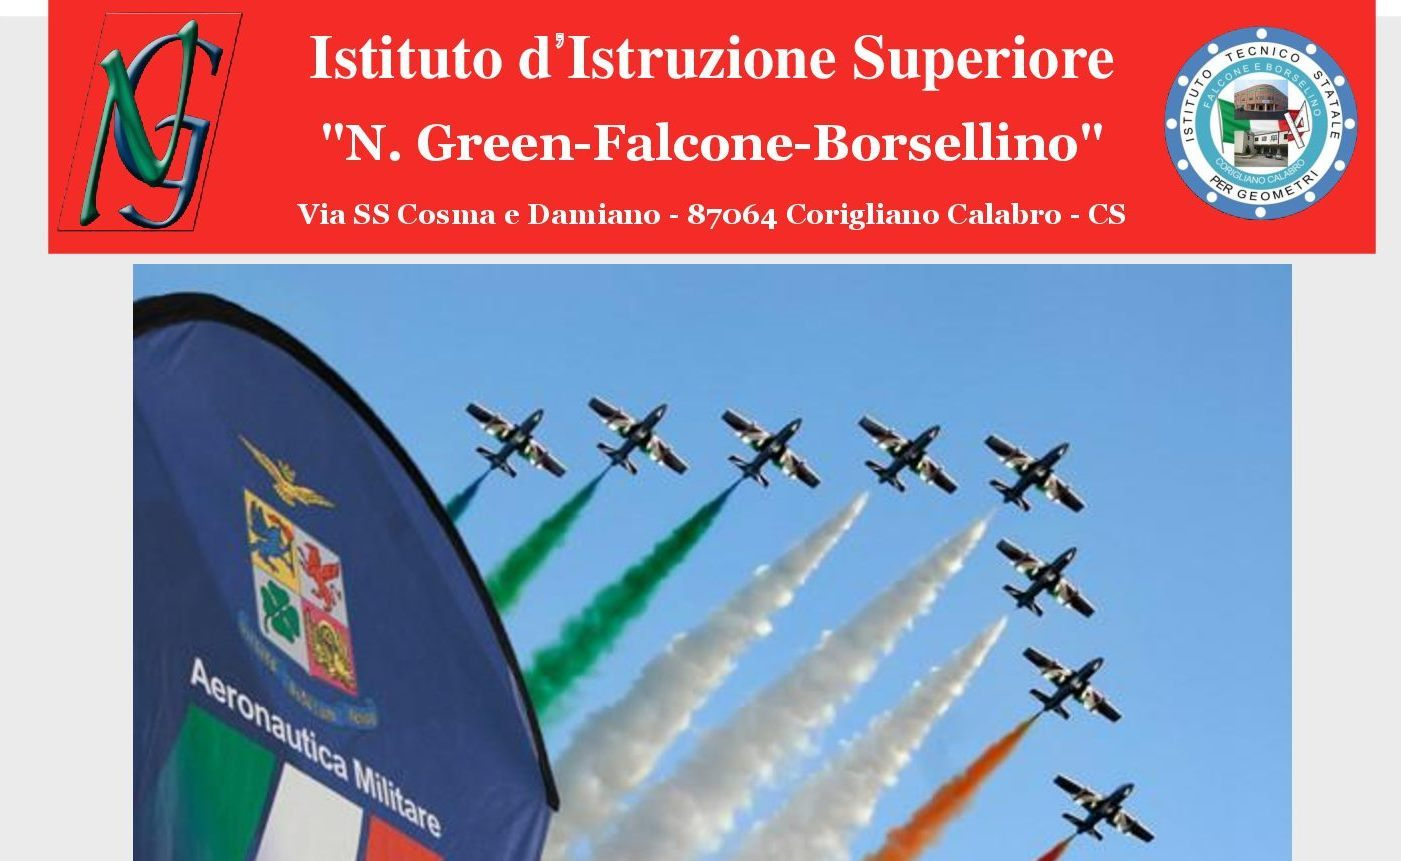 Locandina-open-day-Green-Falcone-e-Borsellino